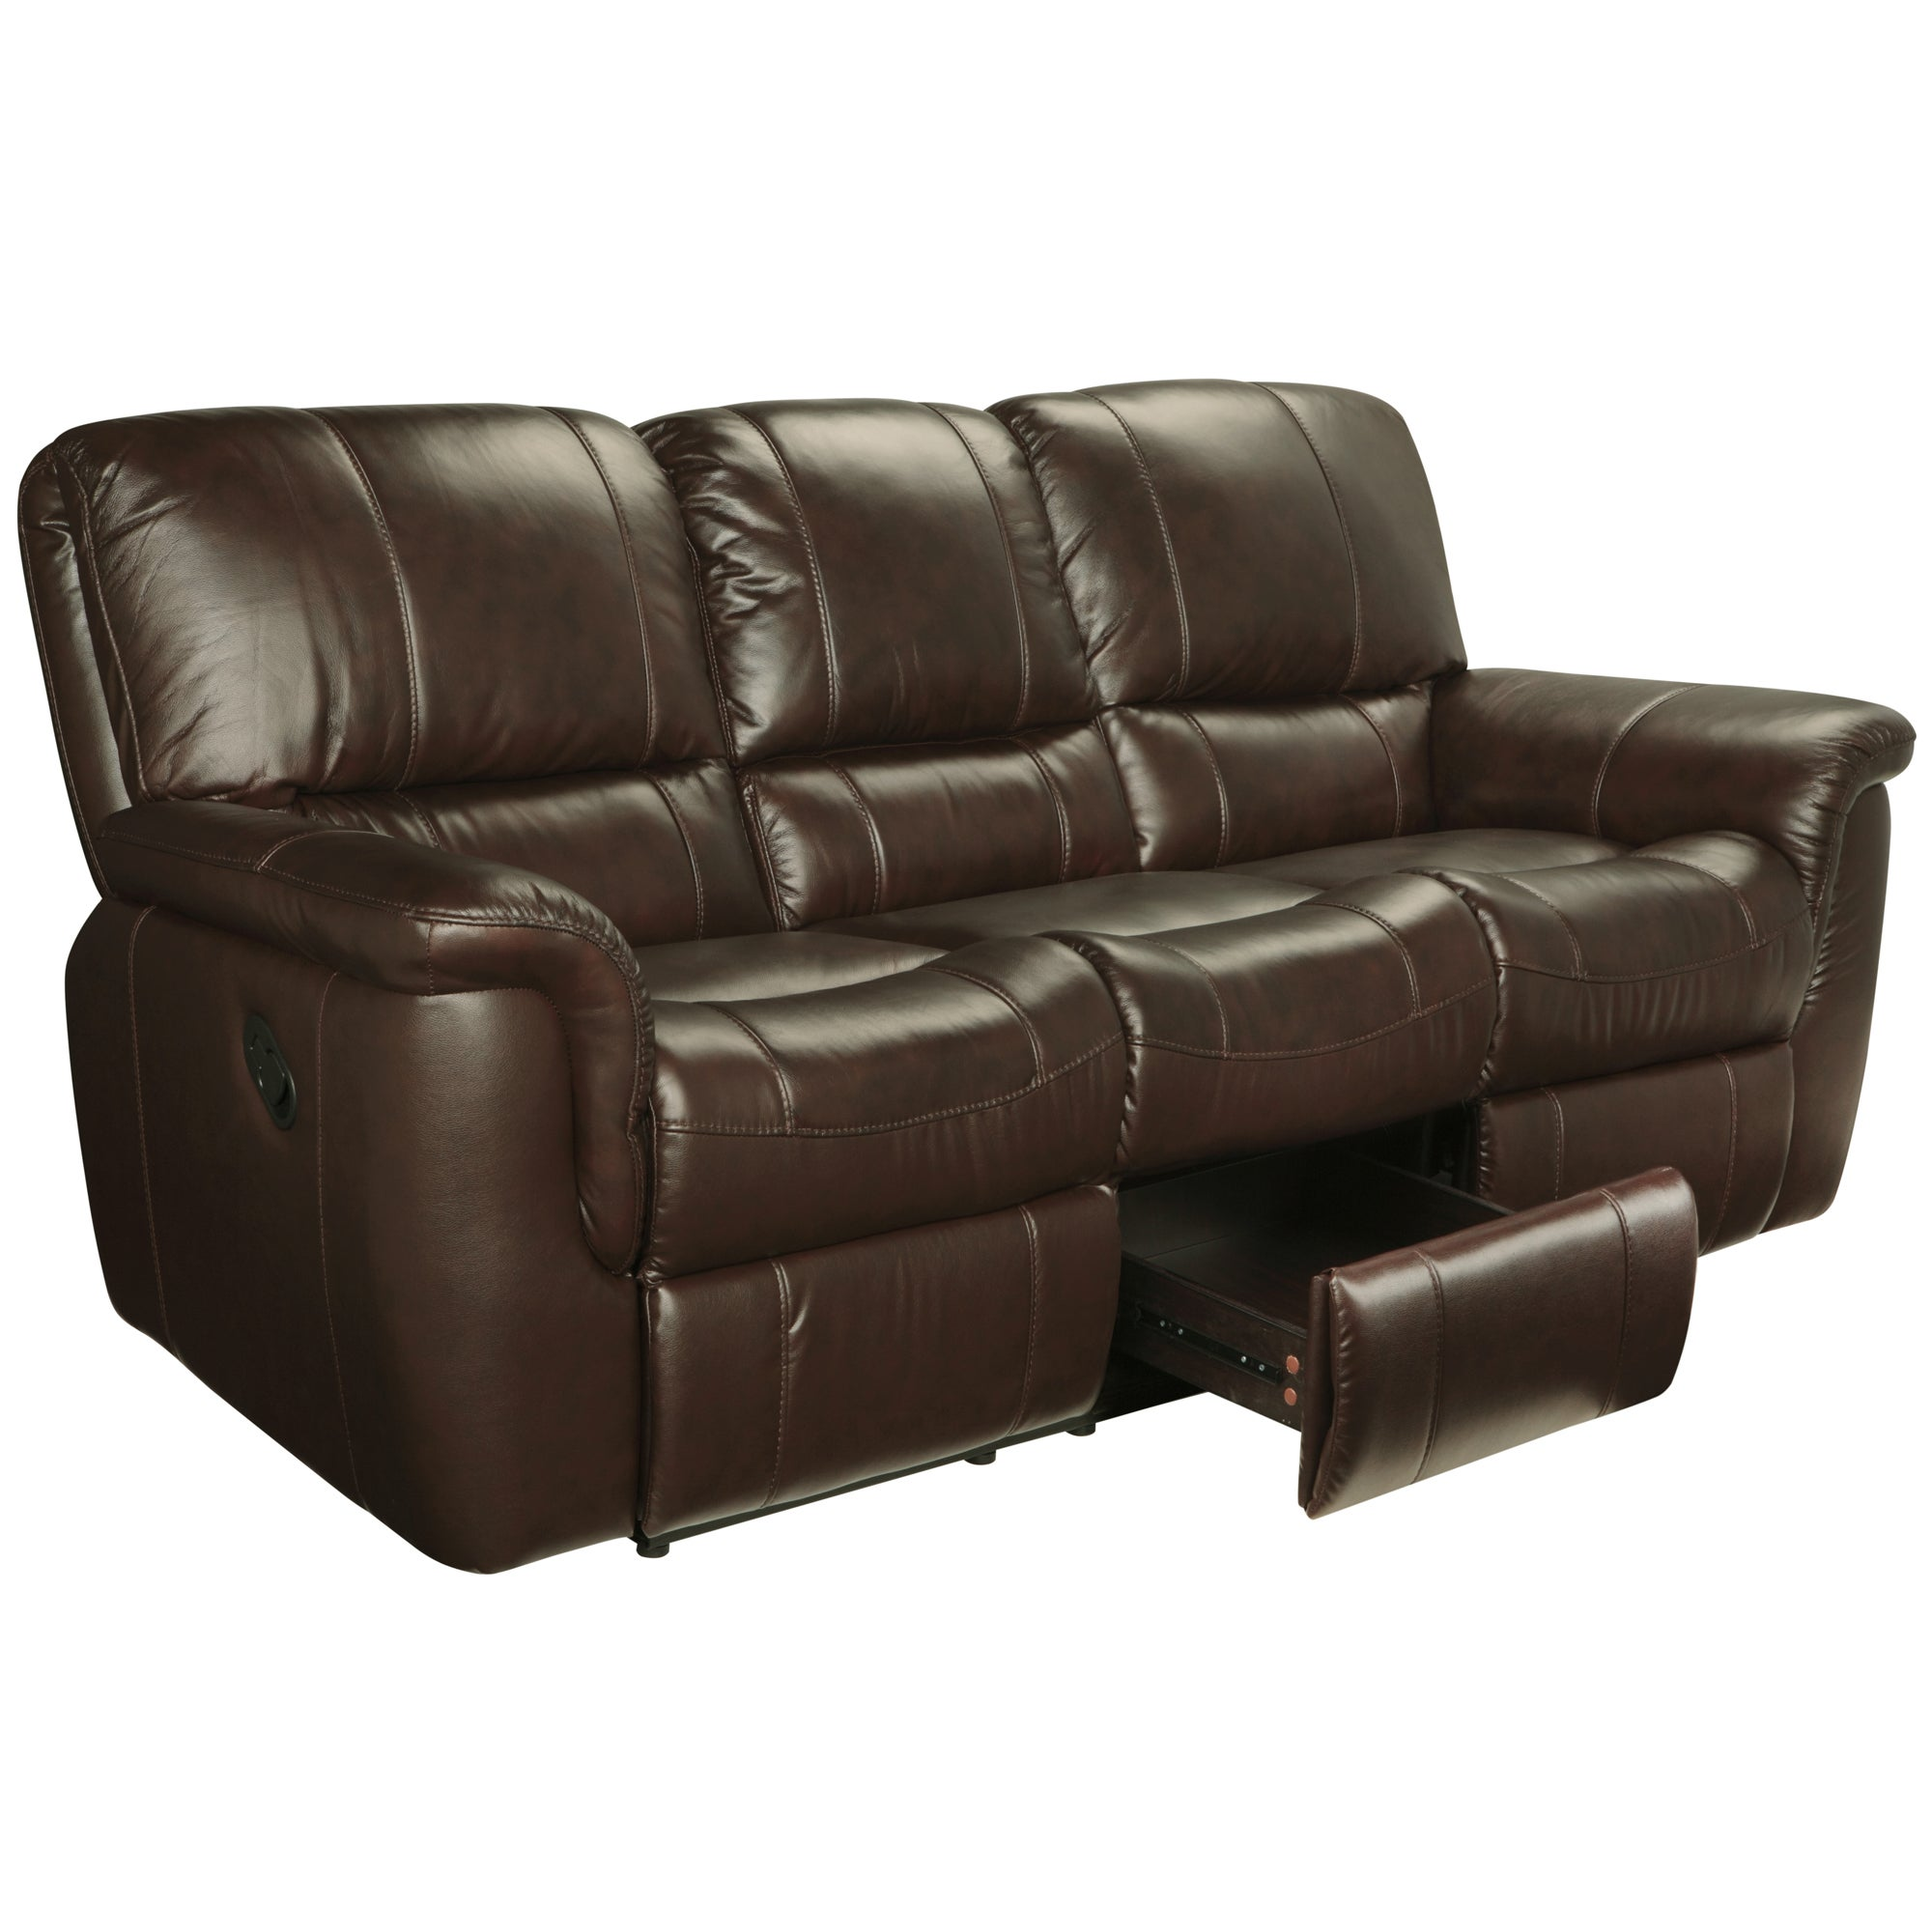 leather brown sofas reclining barcaccia couch power rooms living transitional sofa products